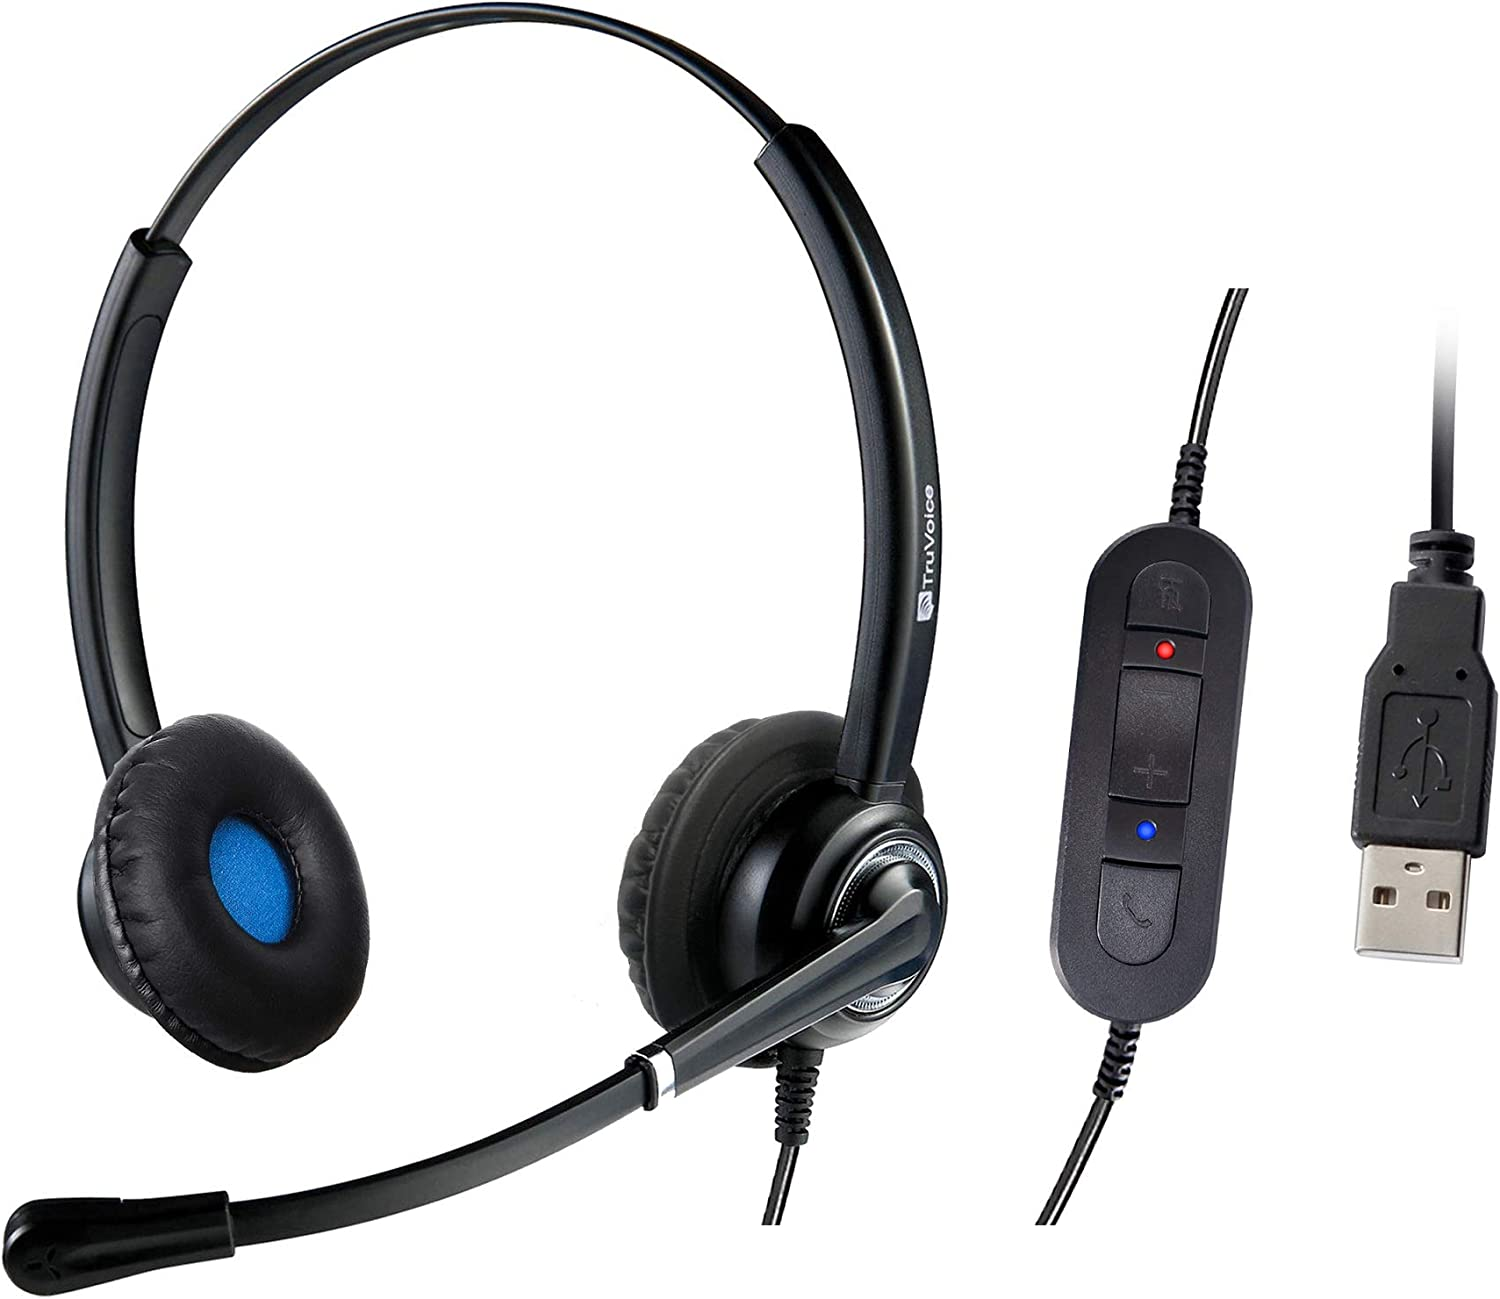 VoicePro 20 Double Ear Professional USB Call Center/Office Headset with Noise Canceling Microphone and in-Line Call Controls - Works with Skype, Dragon, Teams, Zoom, Cisco Jabber, Avaya X and More